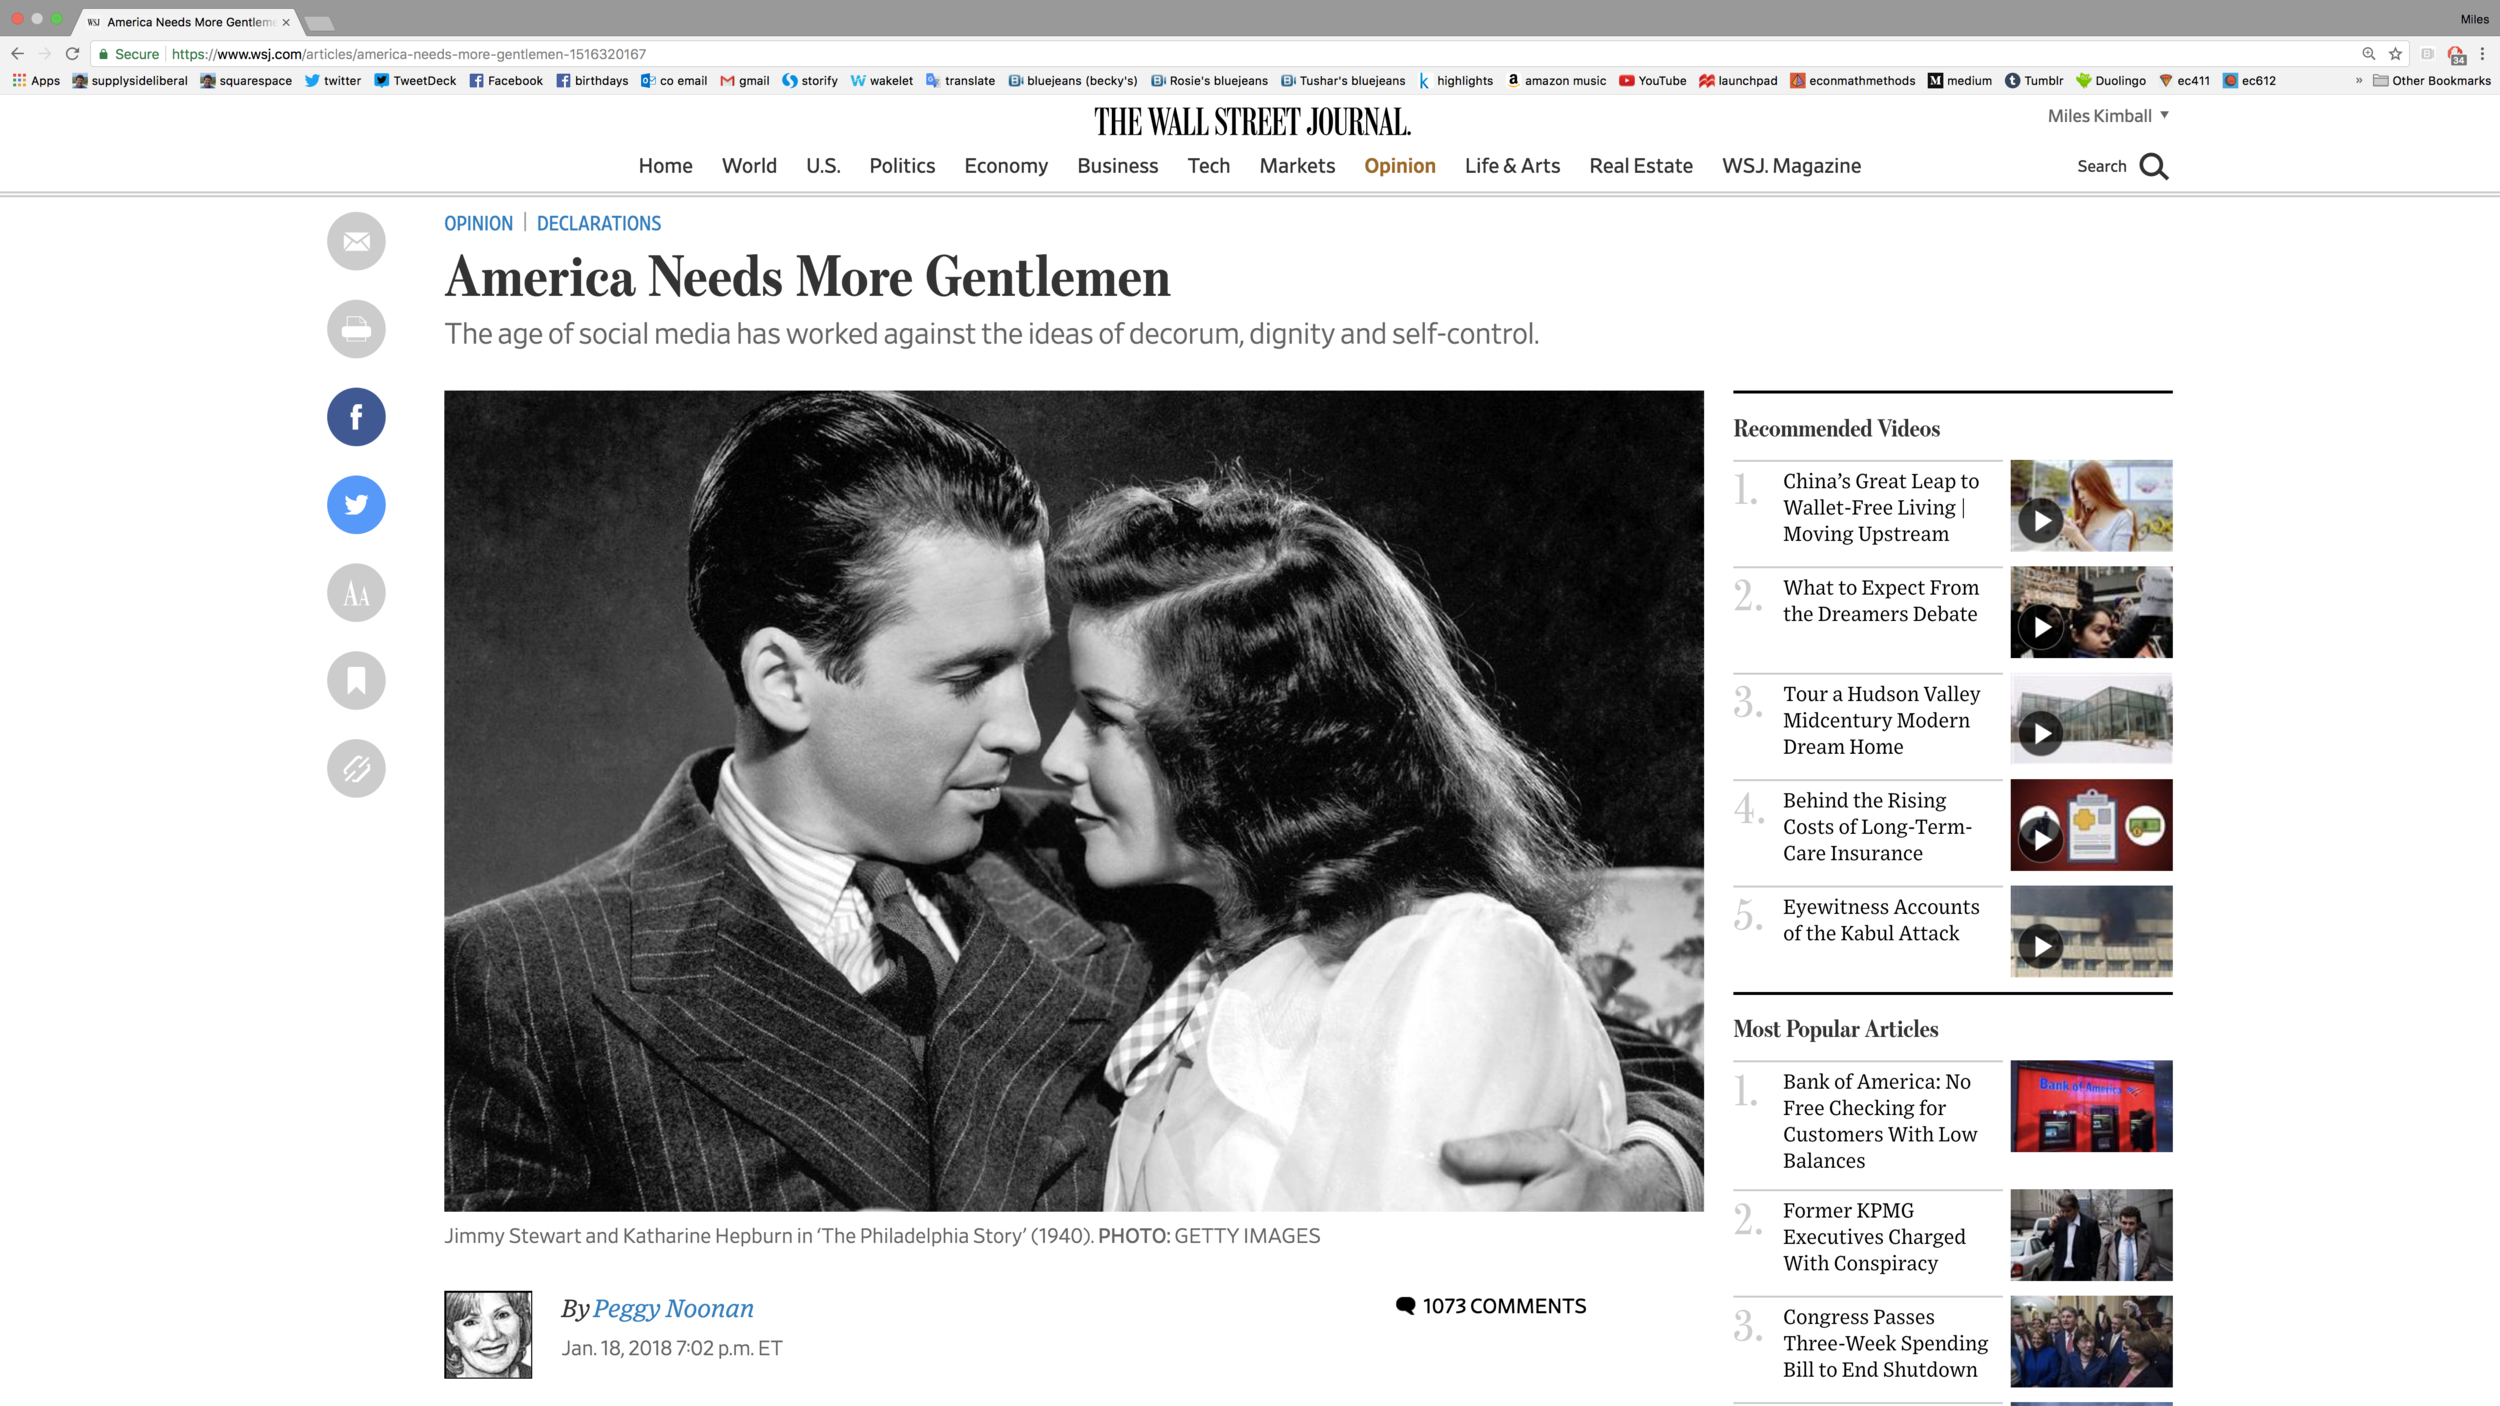 Link to the Peggy Noonan editorial above